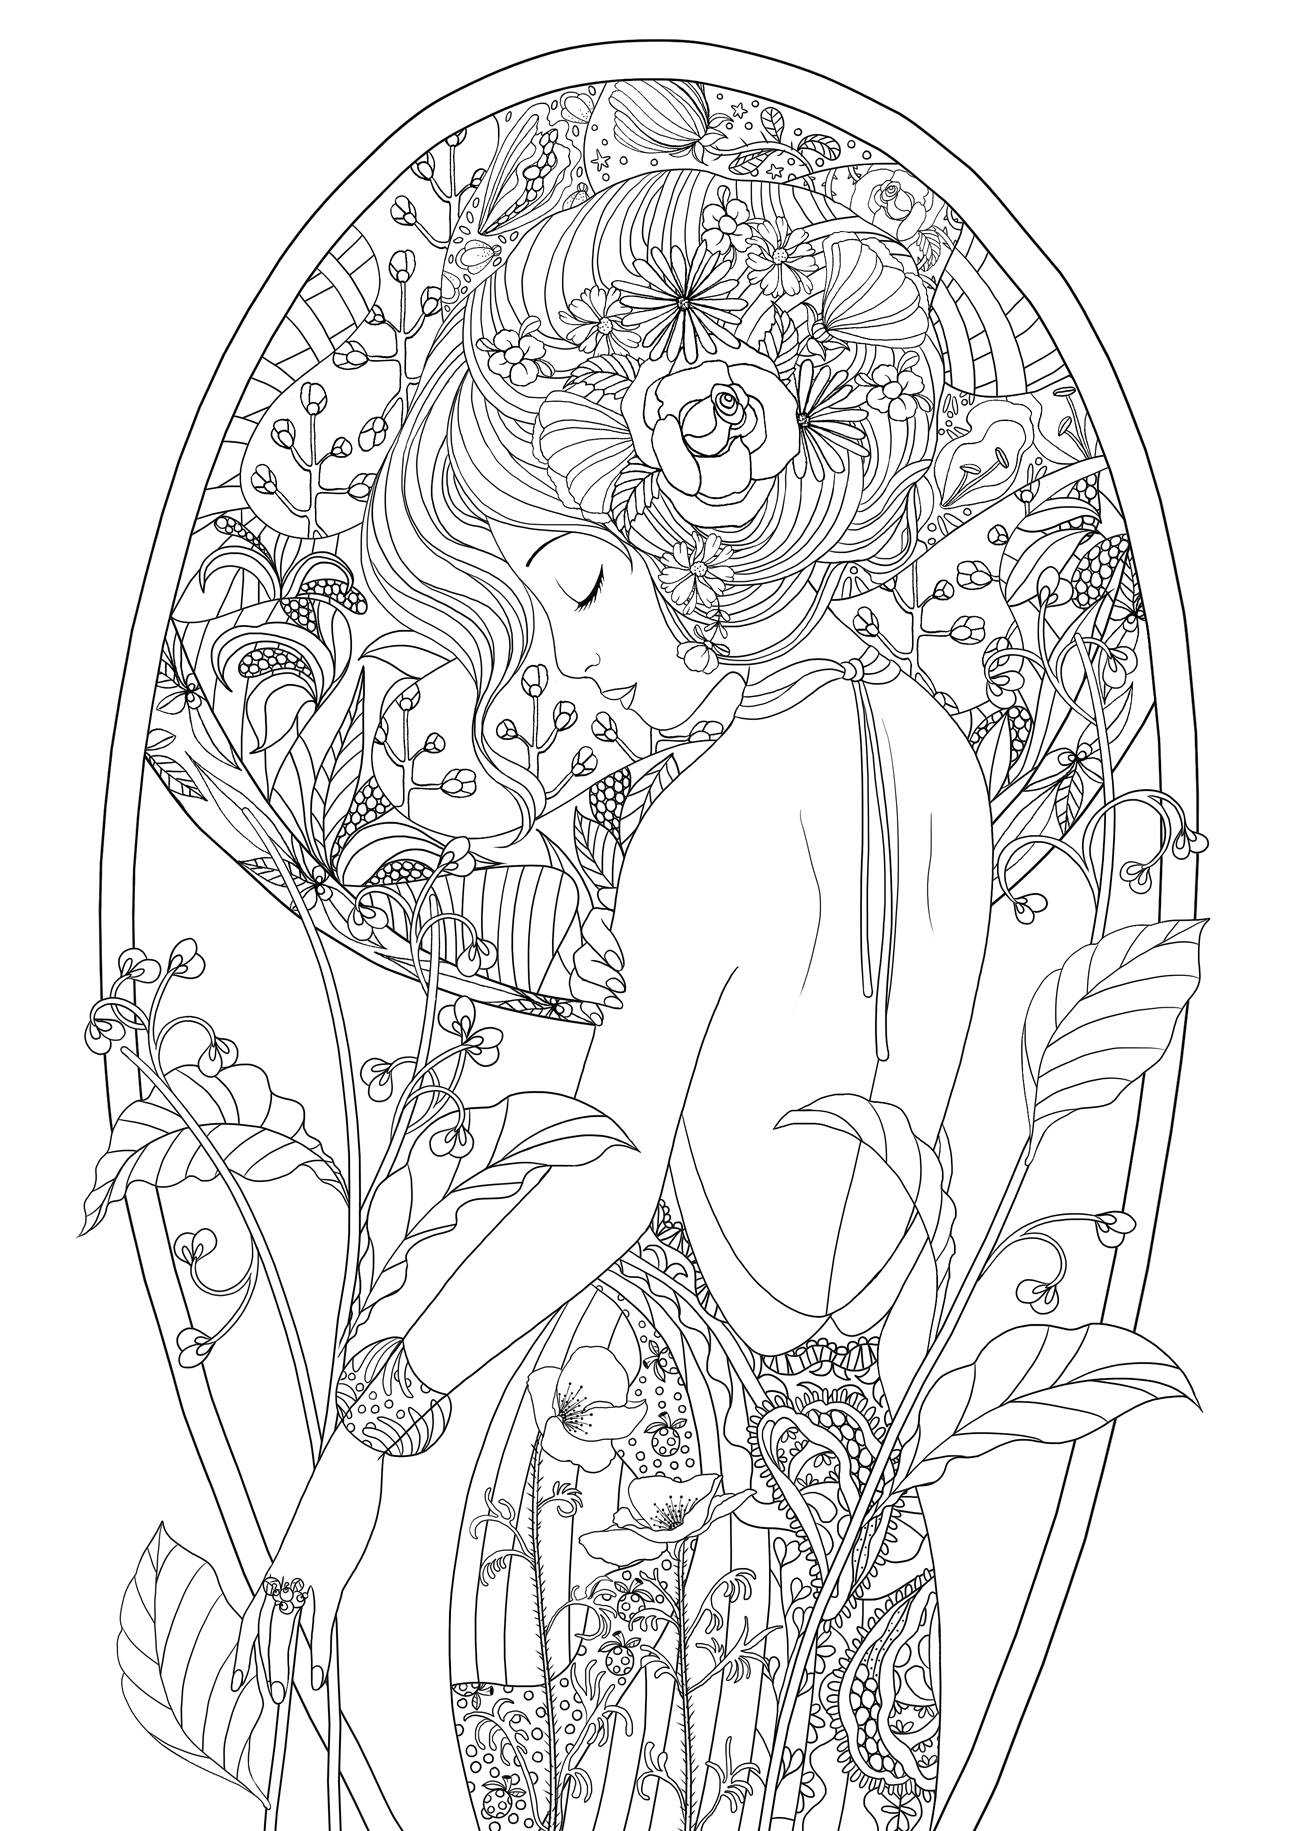 coloring pages for adults women best 898 beautiful women coloring pages for adults ideas for adults pages coloring women